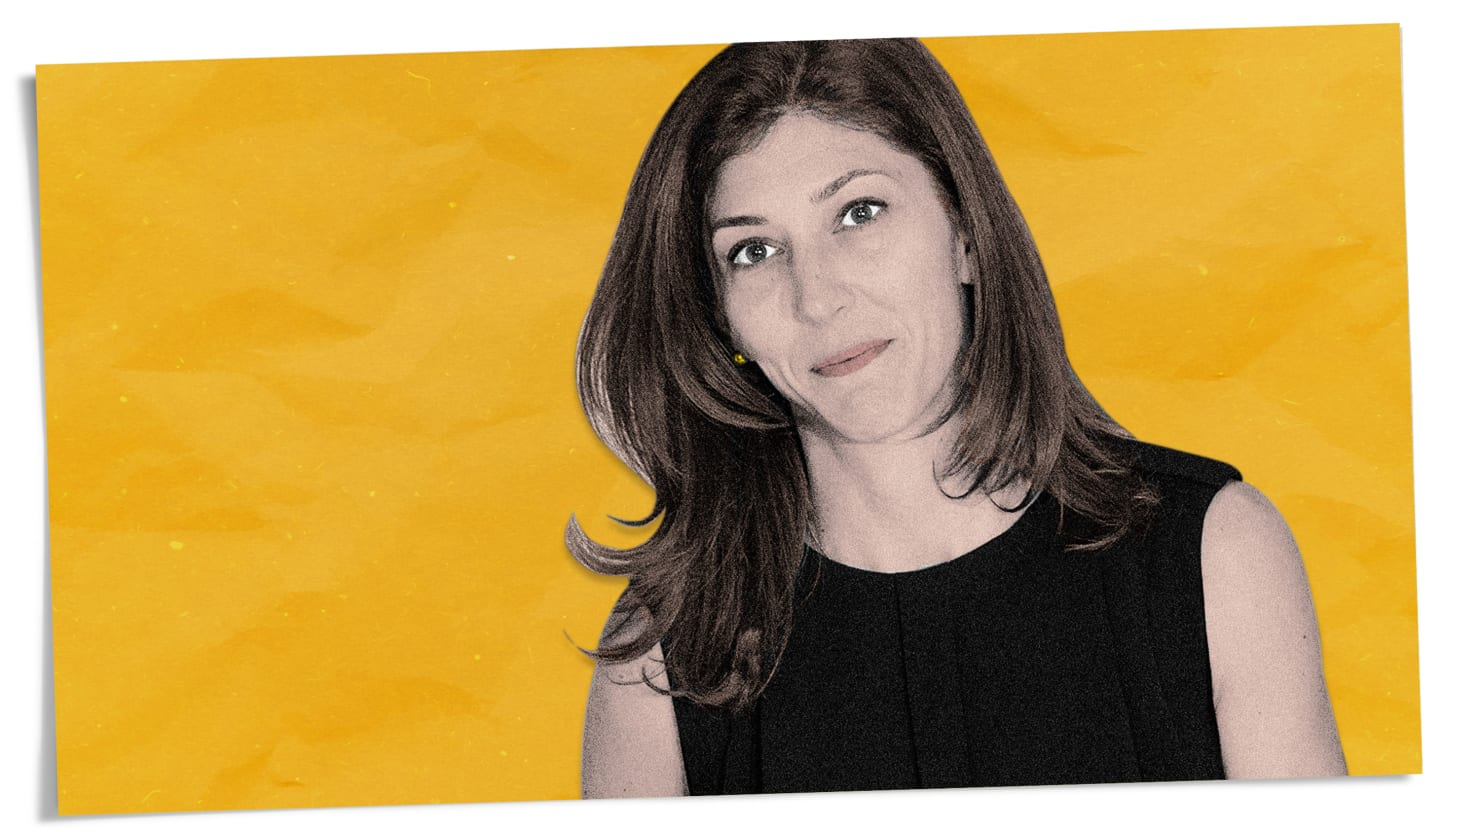 Lisa Page Speaks: 'There's No Fathomable Way I Have Committed Any Crime at All' - The Daily Beast